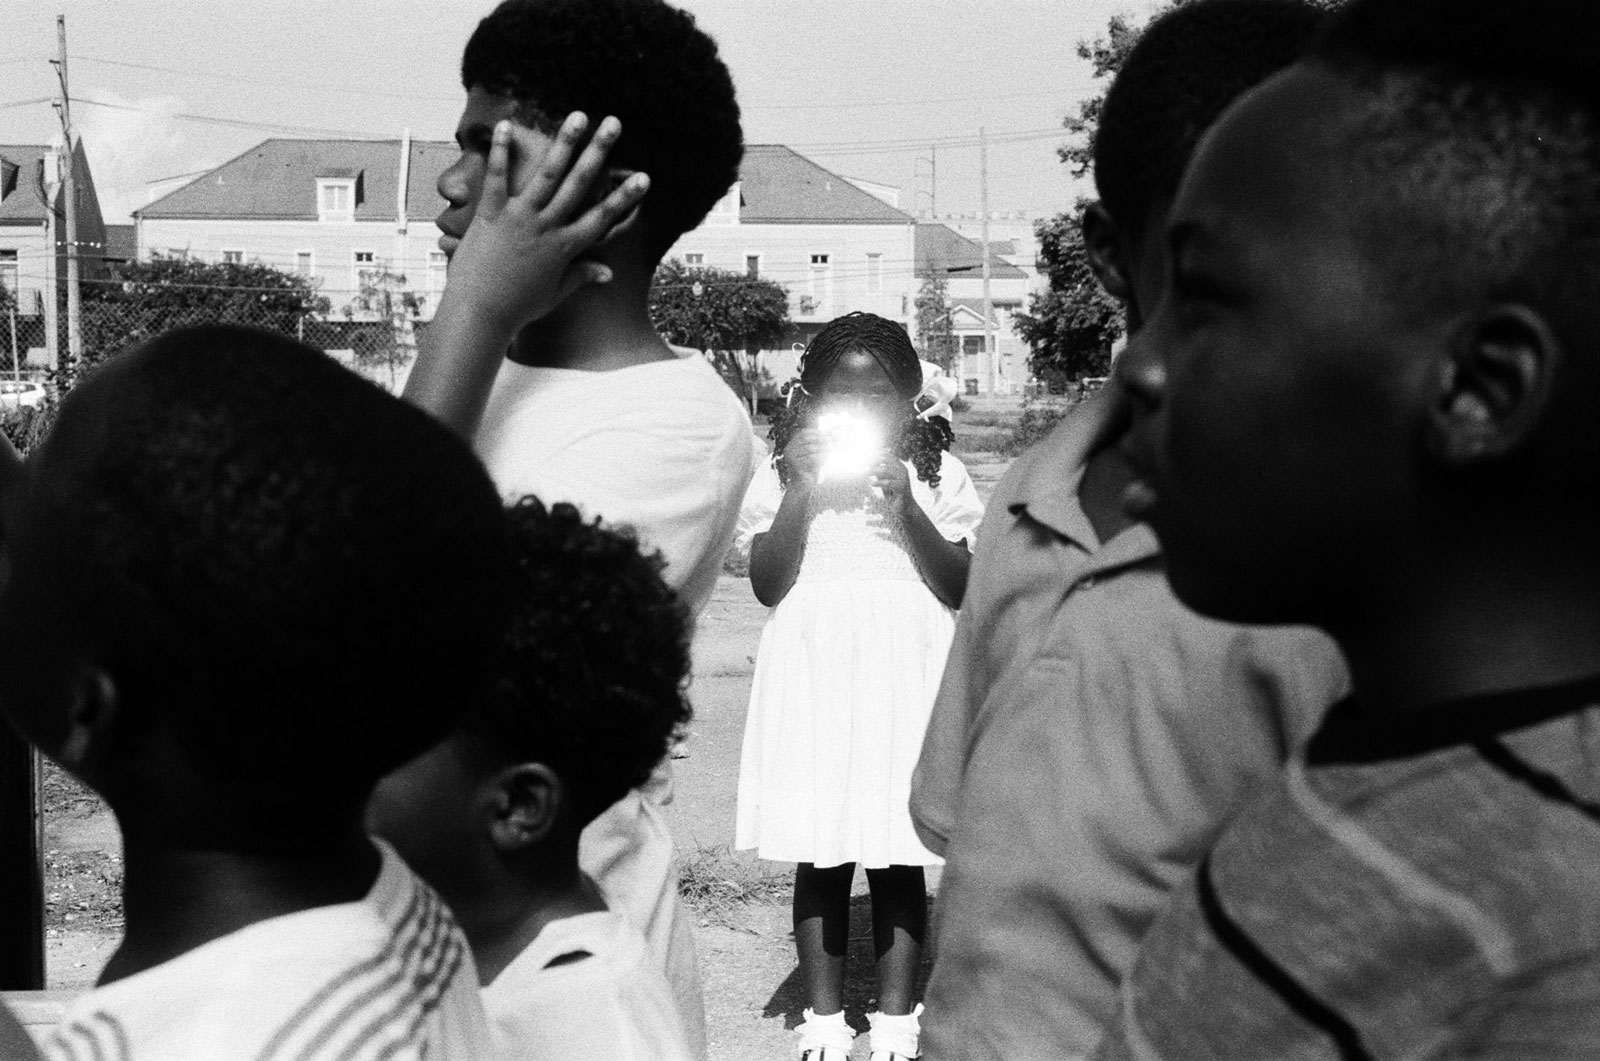 A black-and-white image of a young Black girl in a white dress holding a reflective object that hides her face.